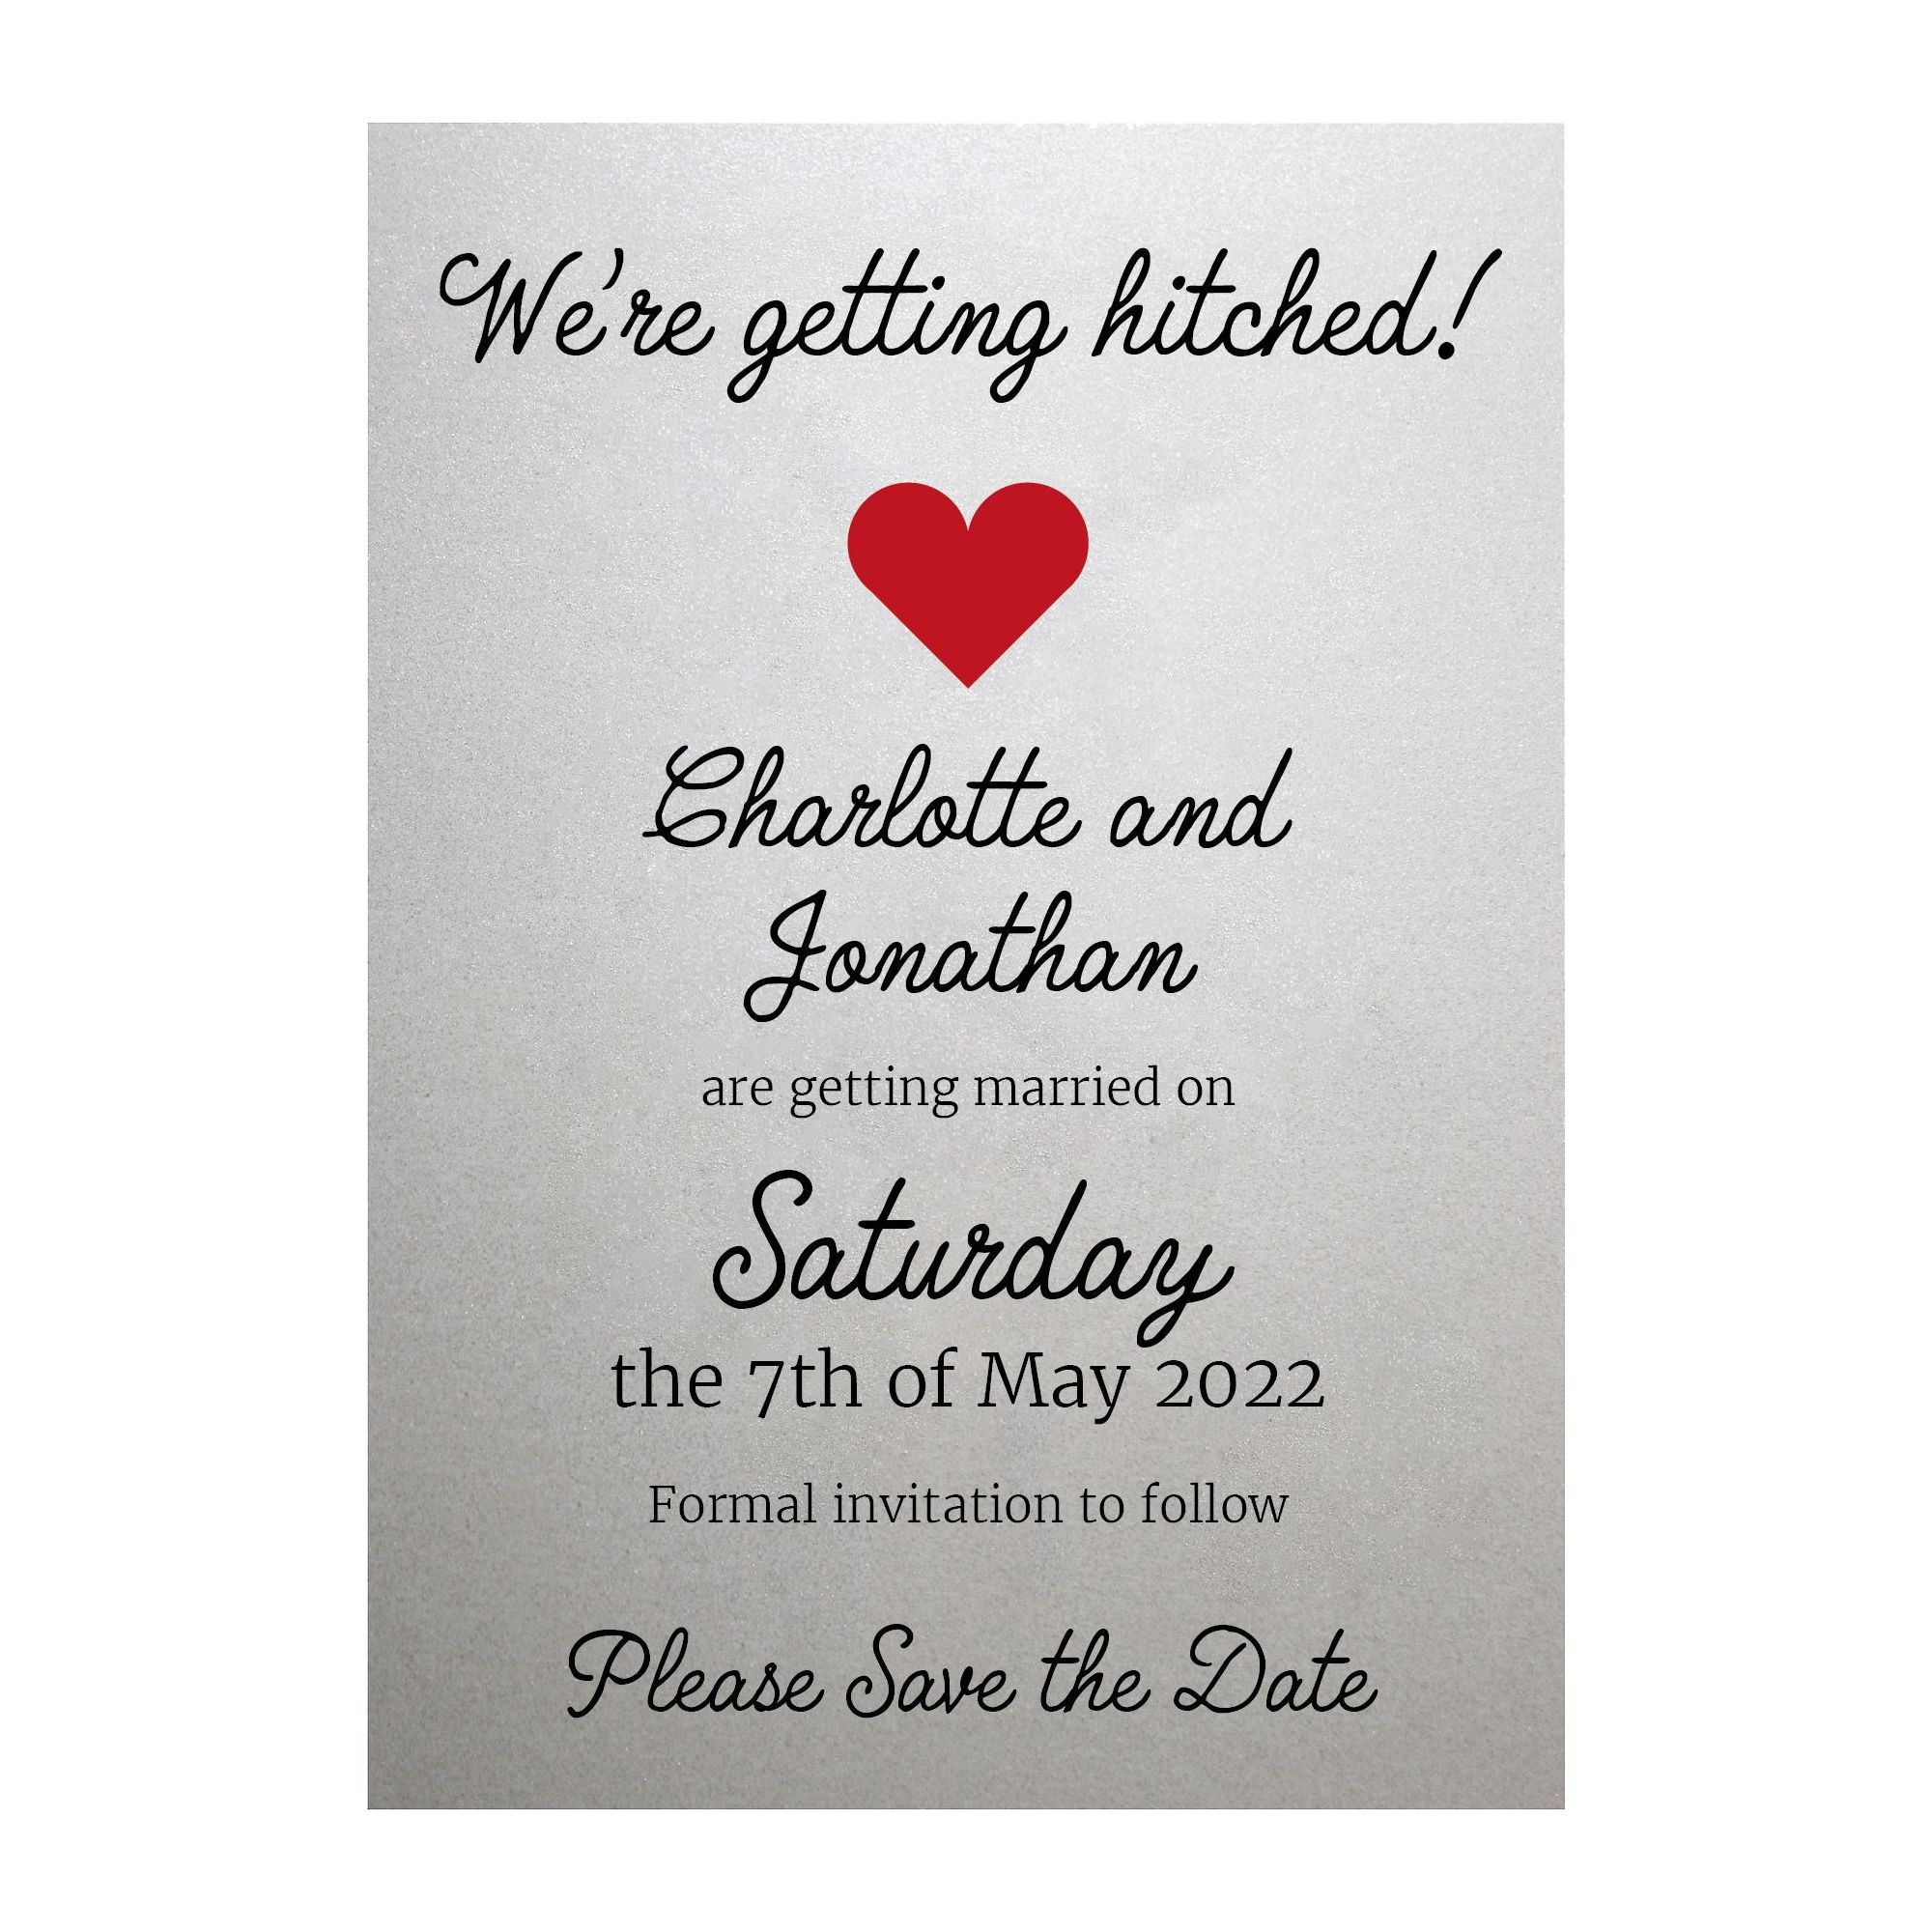 Shimmer Arctic White We're Getting Hitched Save the Date Cards